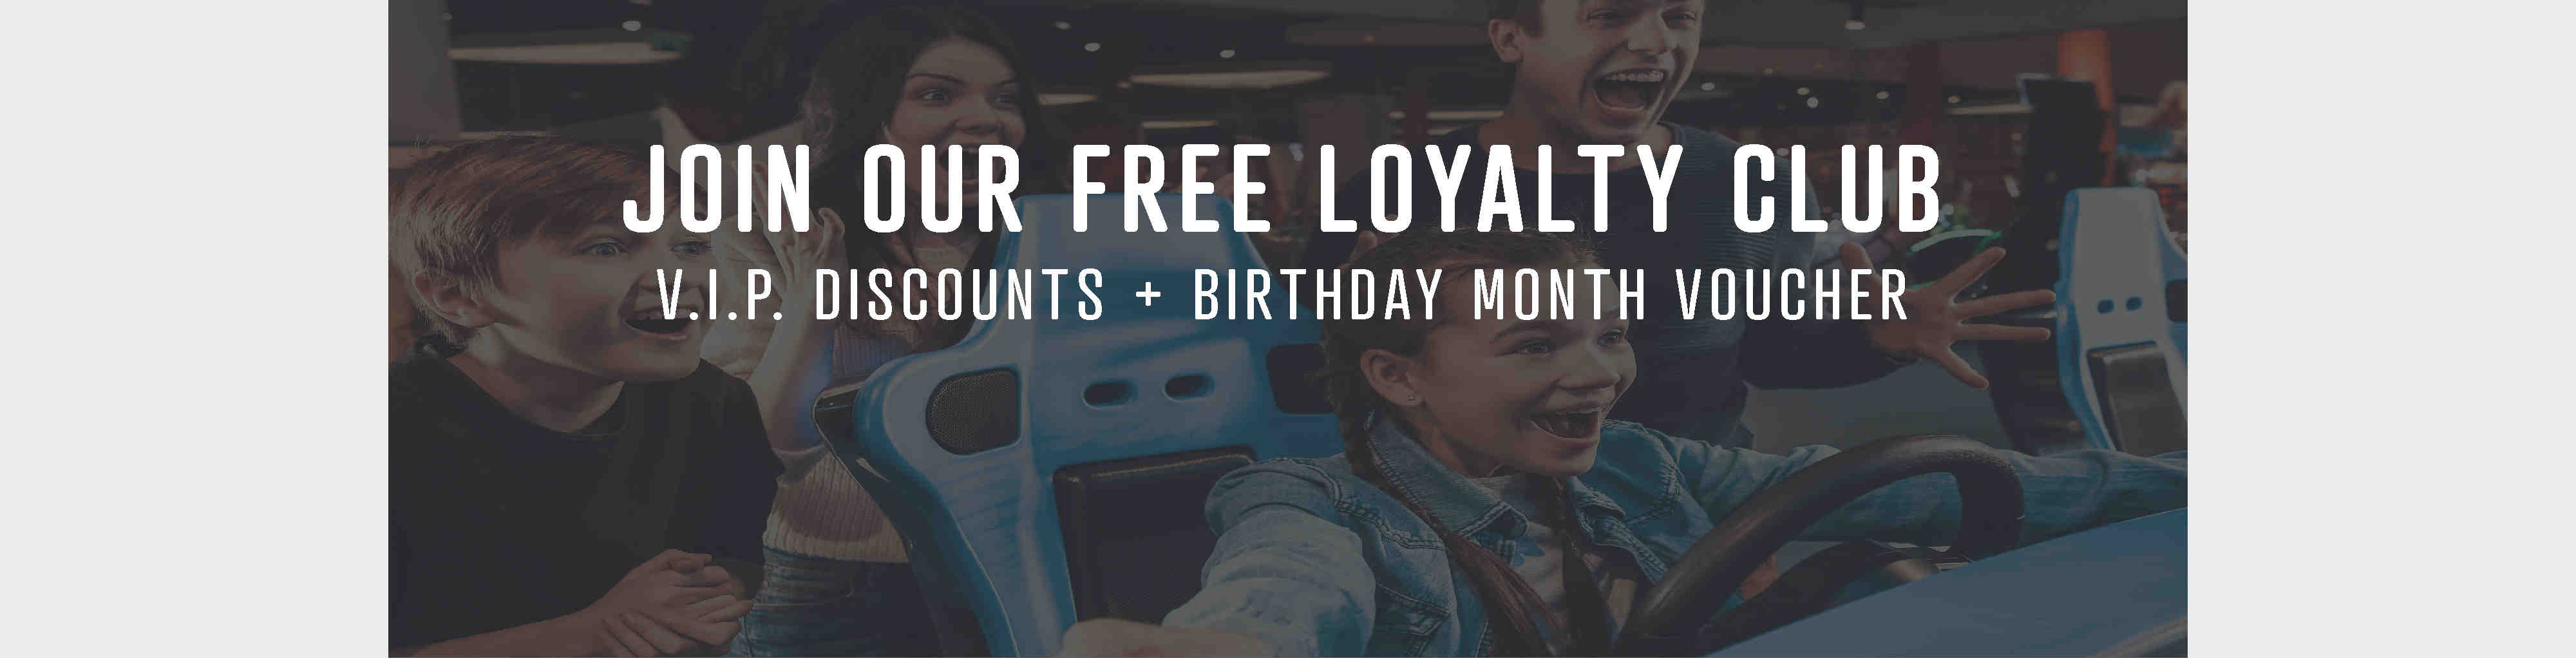 Join our free loyalty club